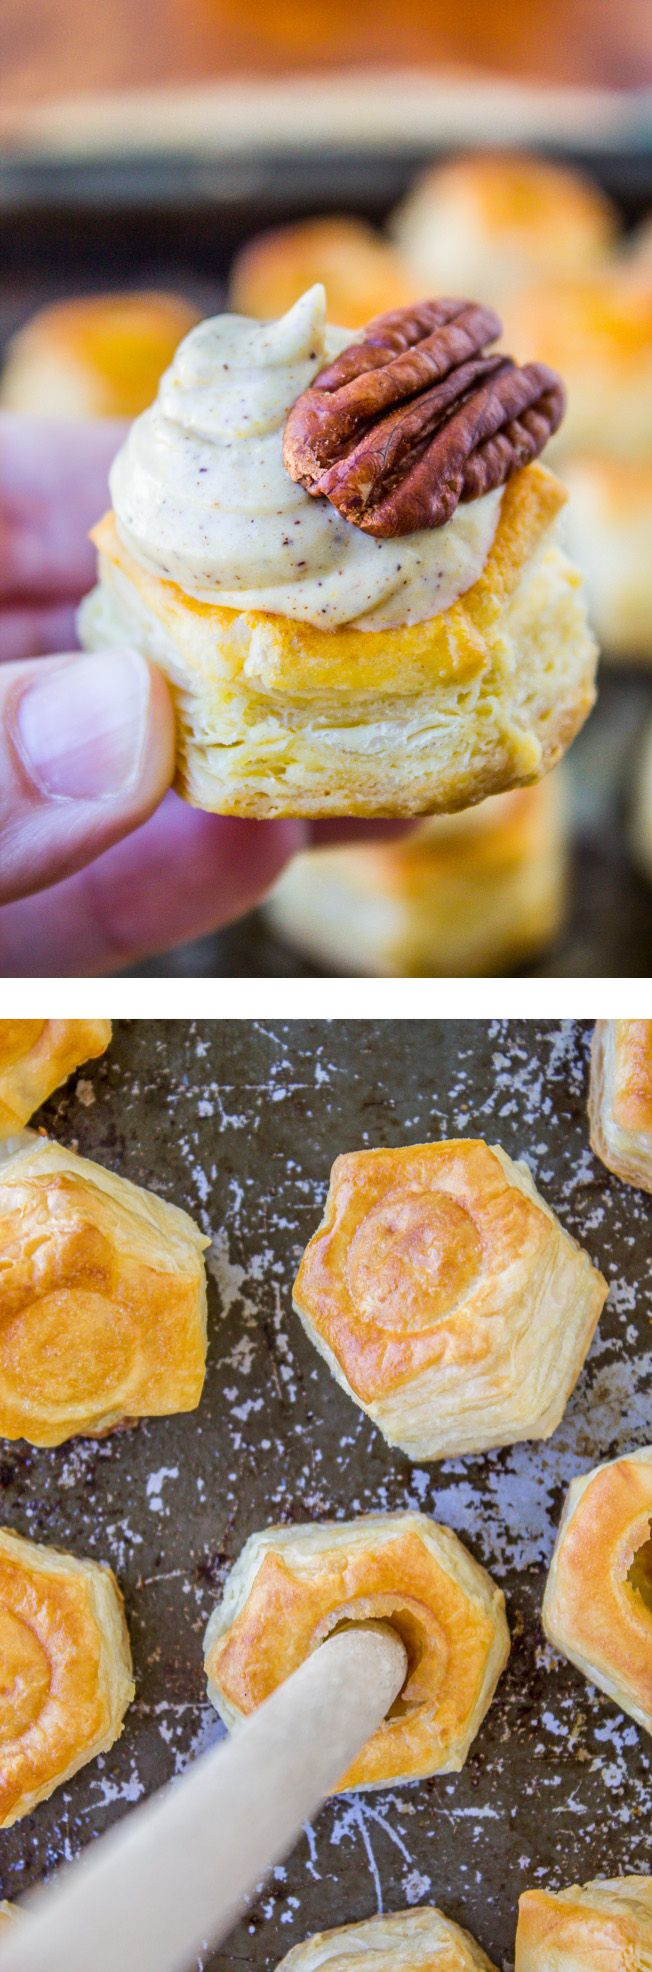 Cream Cheese Pumpkin Puffs from The Food Charlatan // These bite-sized puffs could either be a quick appetizer or the easiest dessert ever!